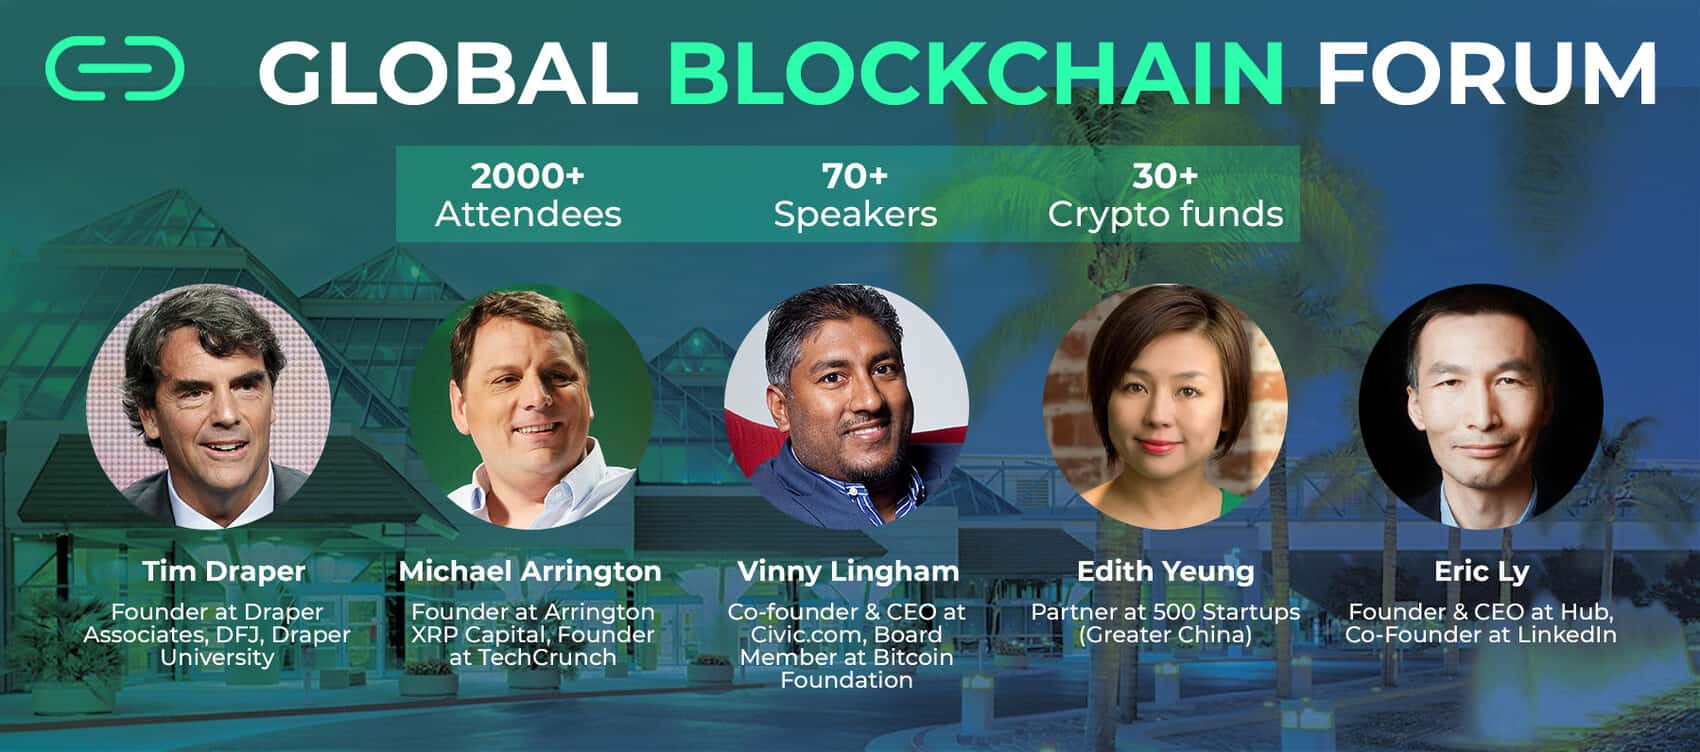 Applicature is a partner at the Global blockchain Forum